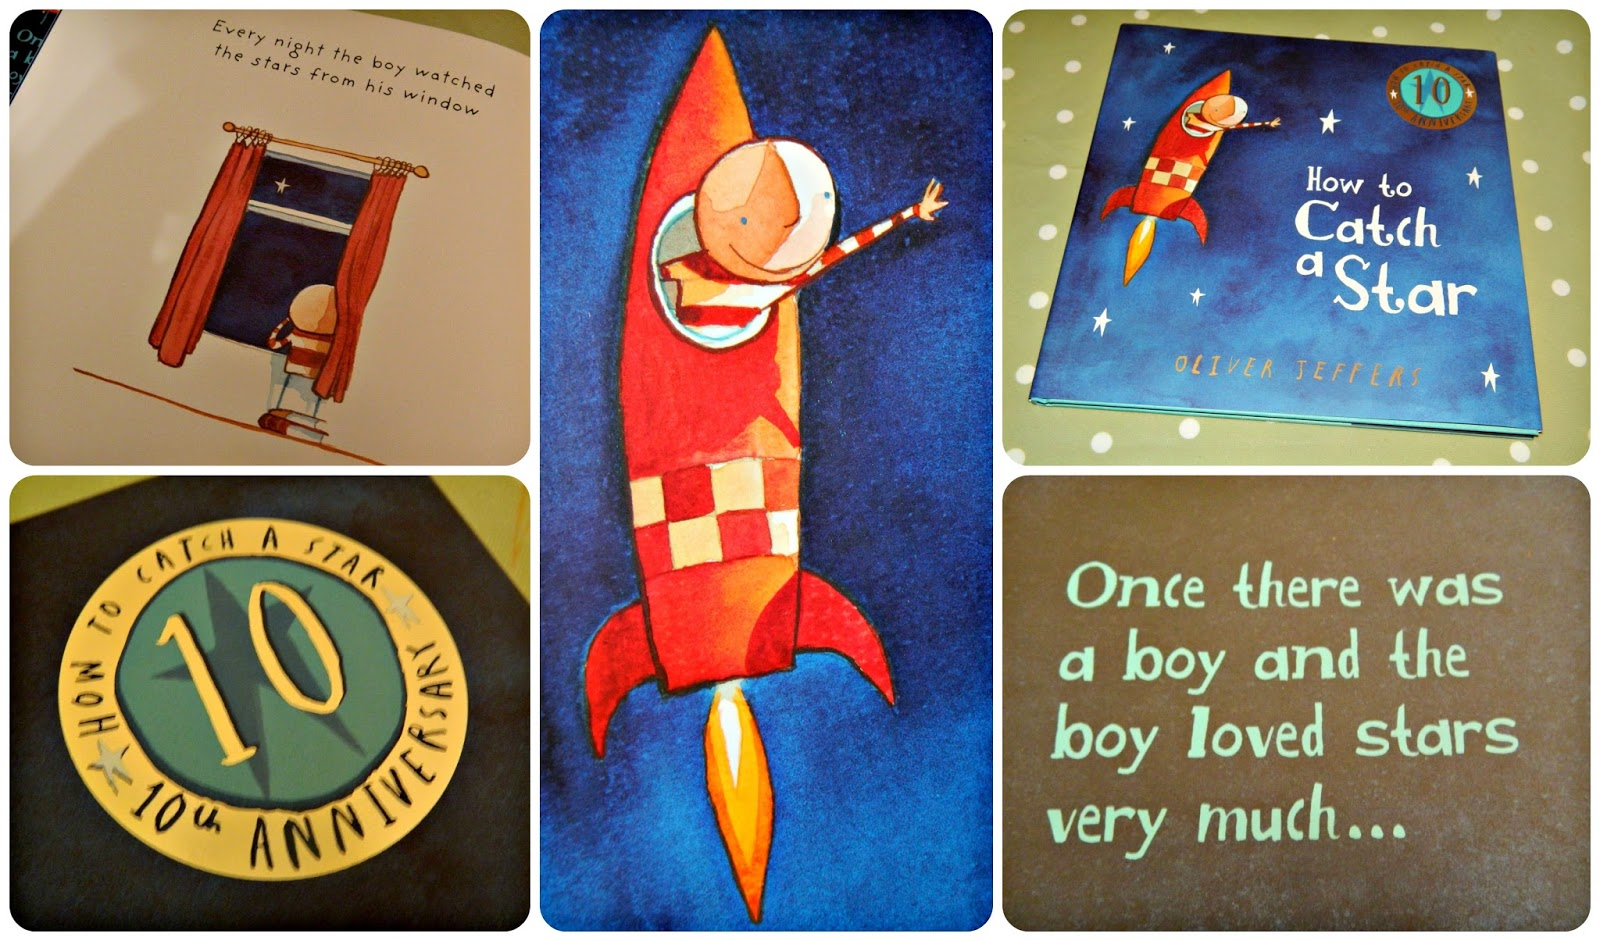 How to Catch a Star Oliver Jeffers 10th Anniversary